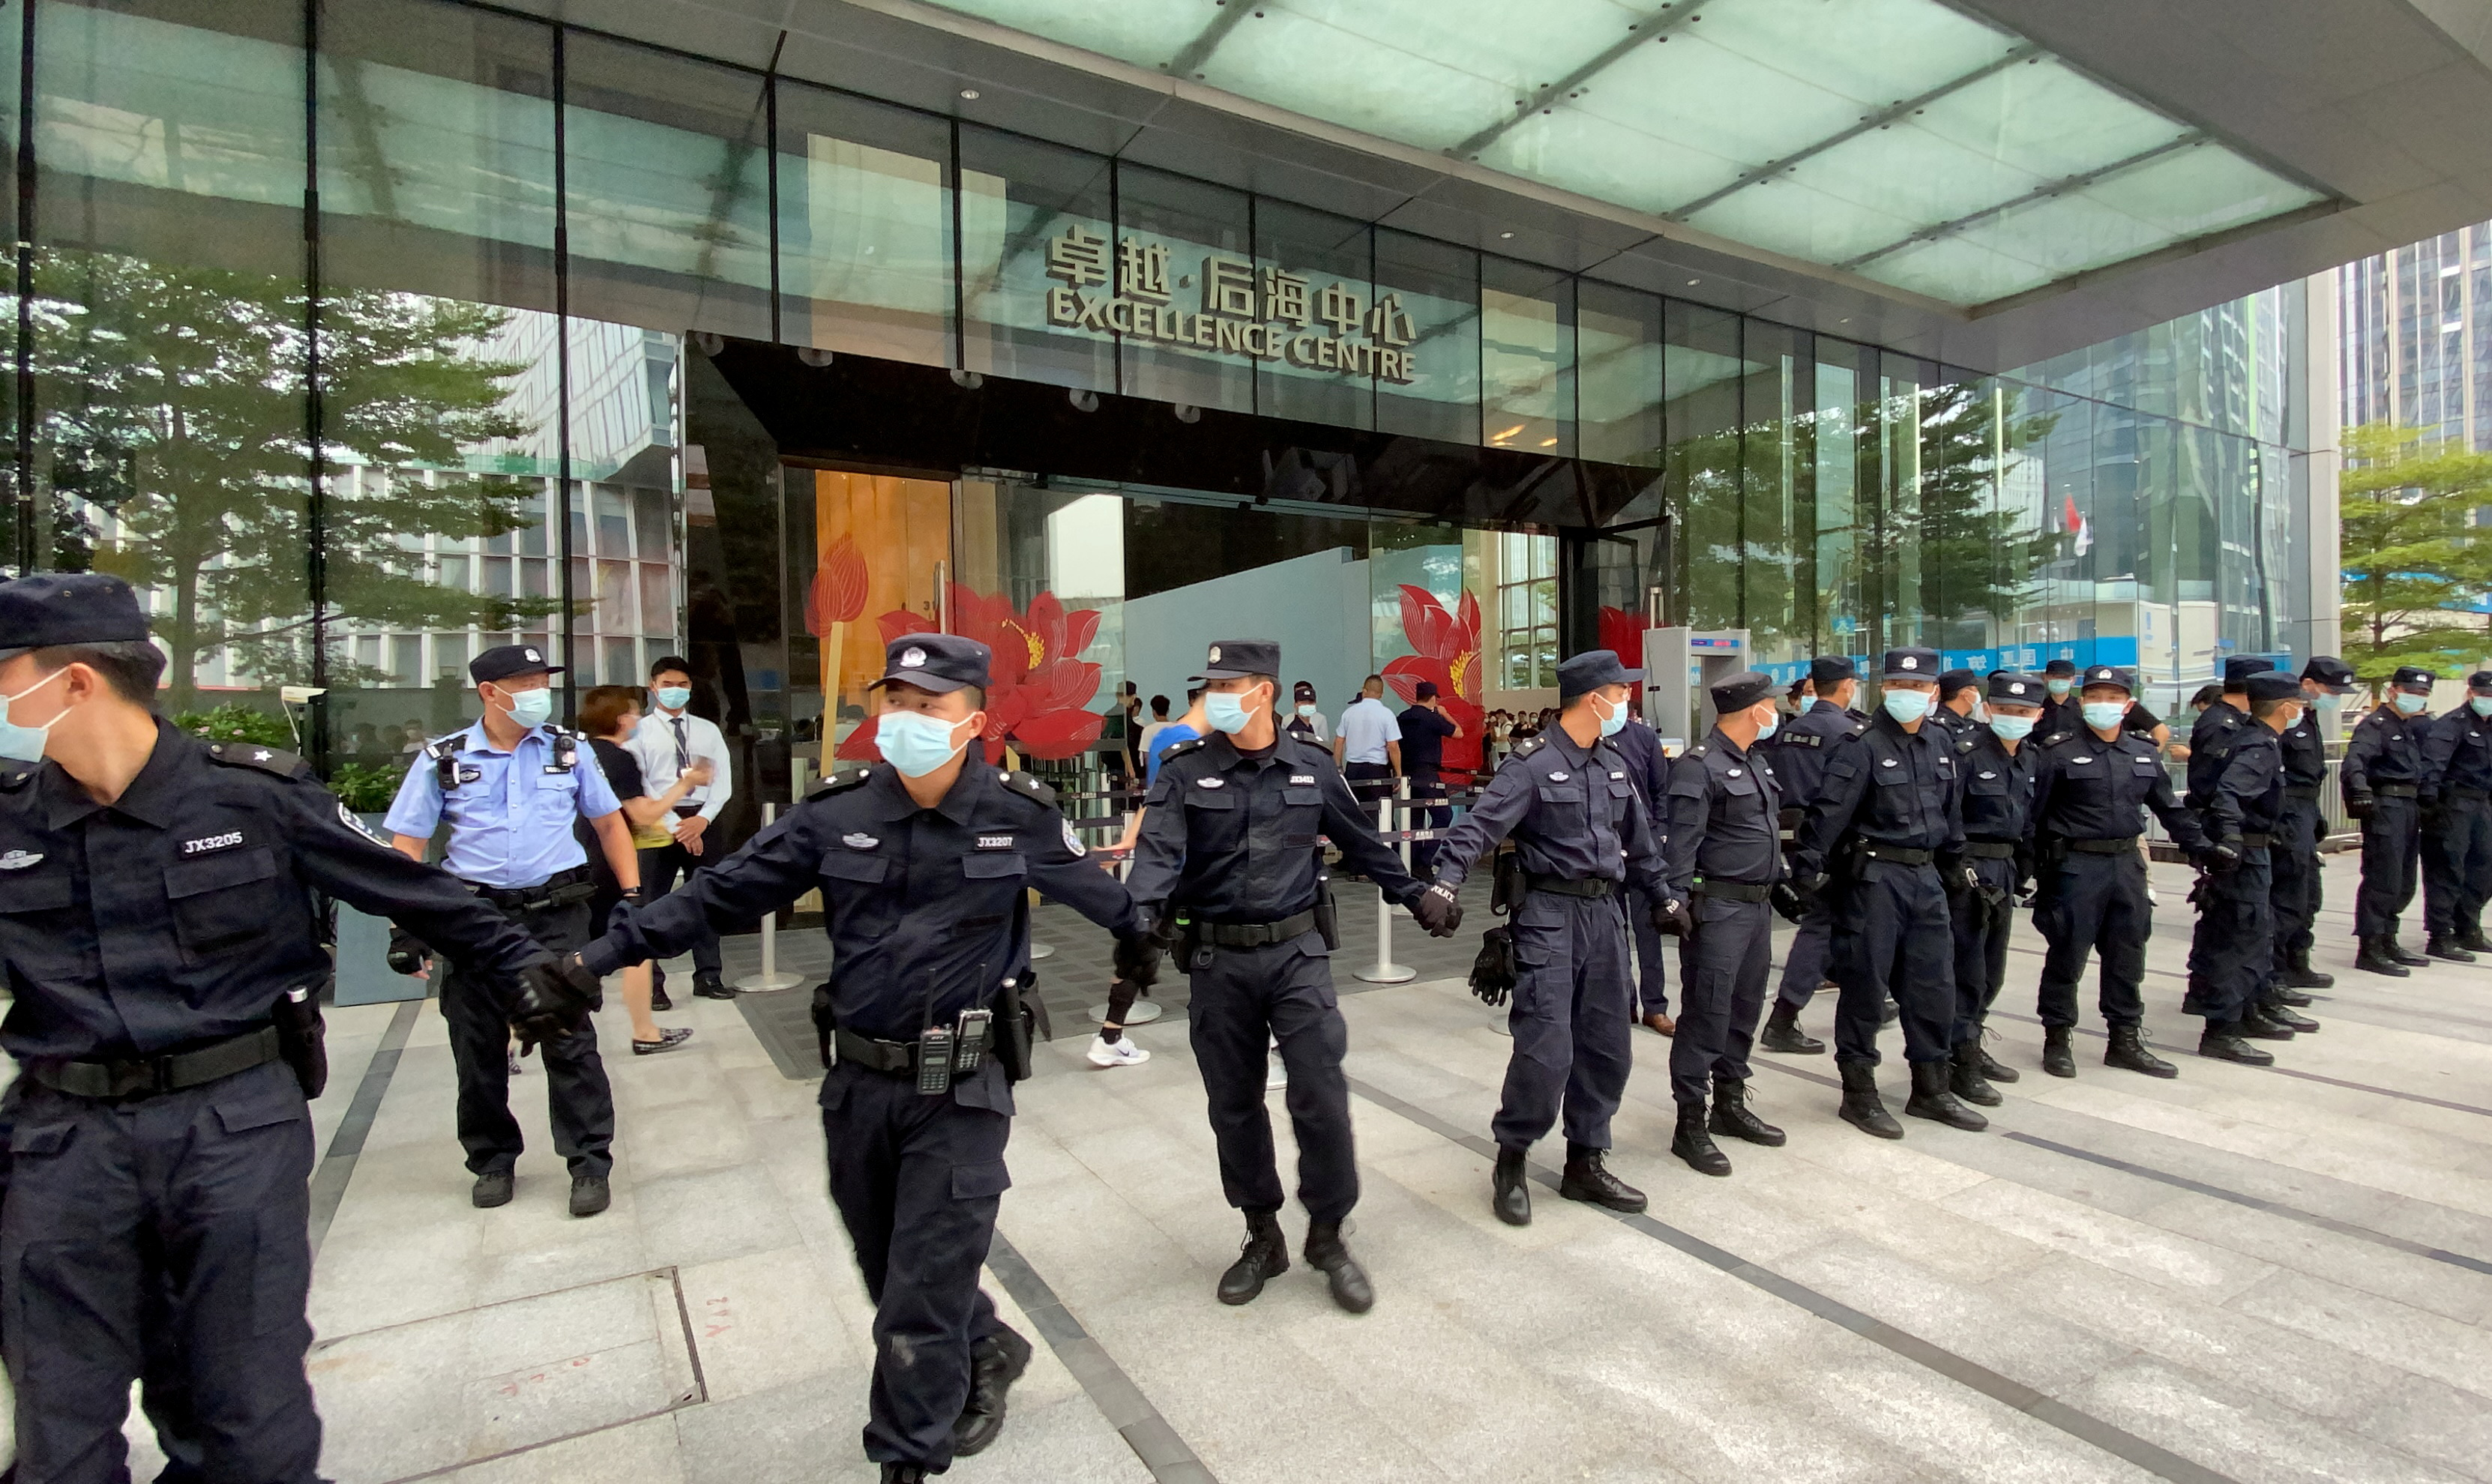 Security personnel form a human chain as they guard outside the Evergrande's headquarters, where people gathered to demand repayment of loans and financial products, in Shenzhen, Guangdong province, China September 13, 2021. REUTERS/David Kirton/File Photo